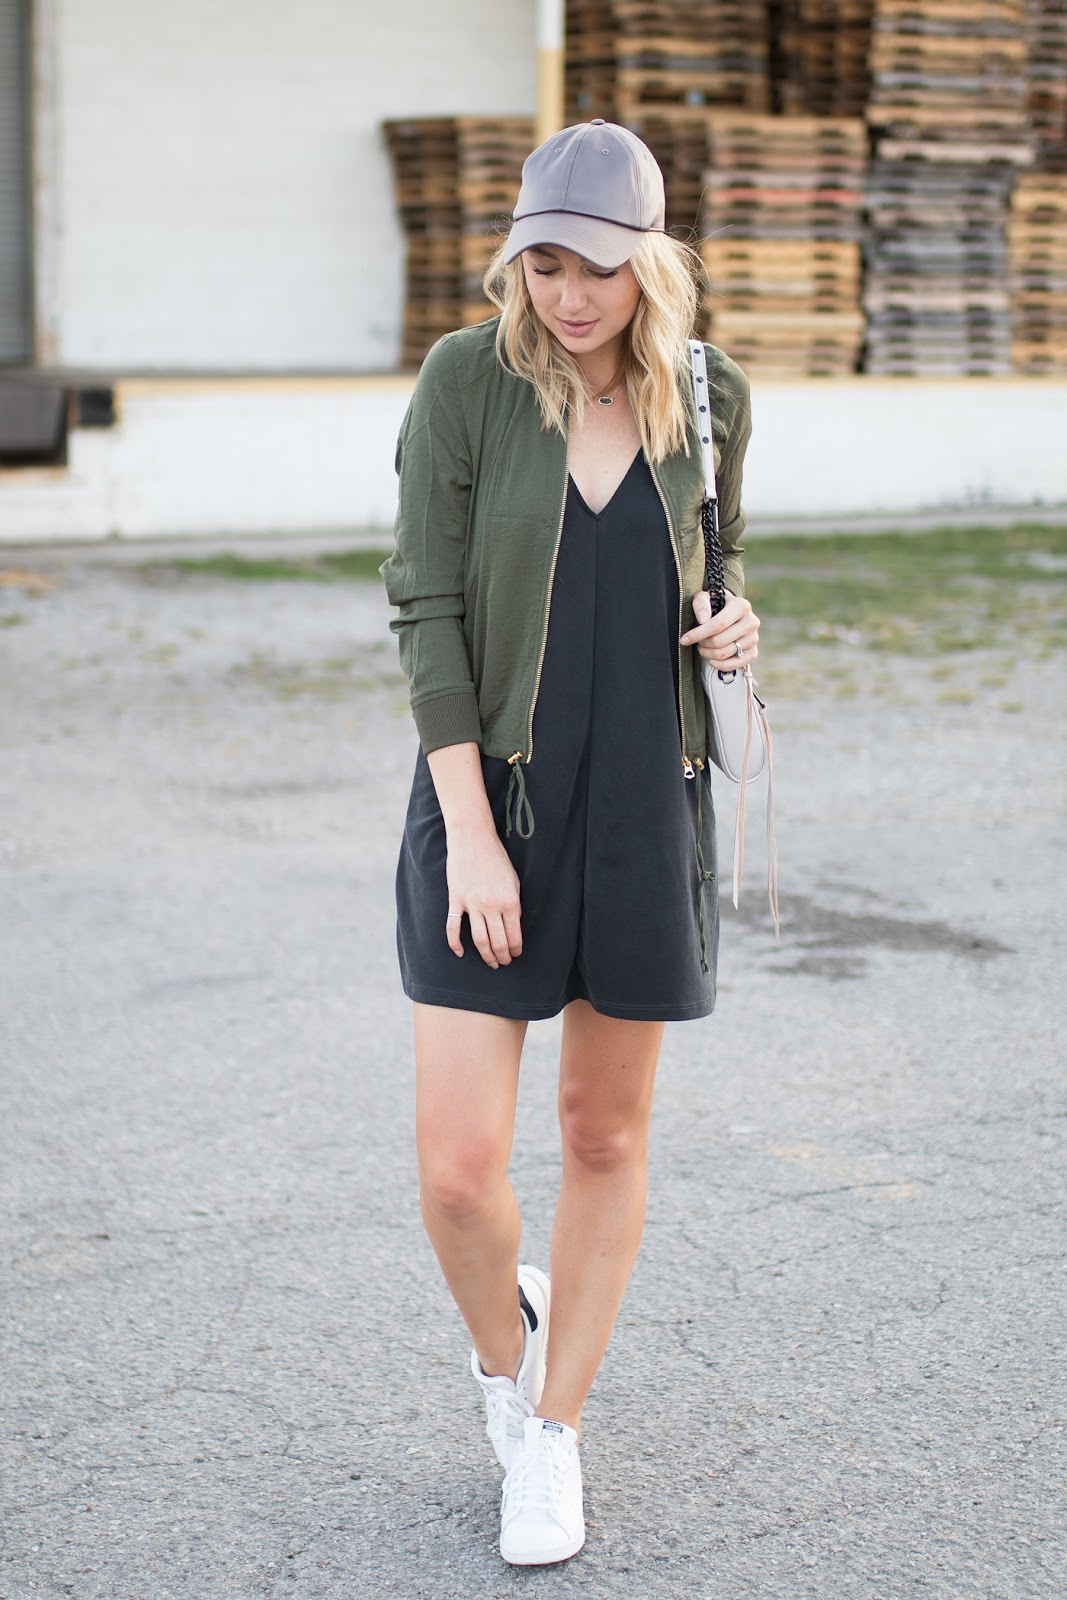 Bomber jacket + dress